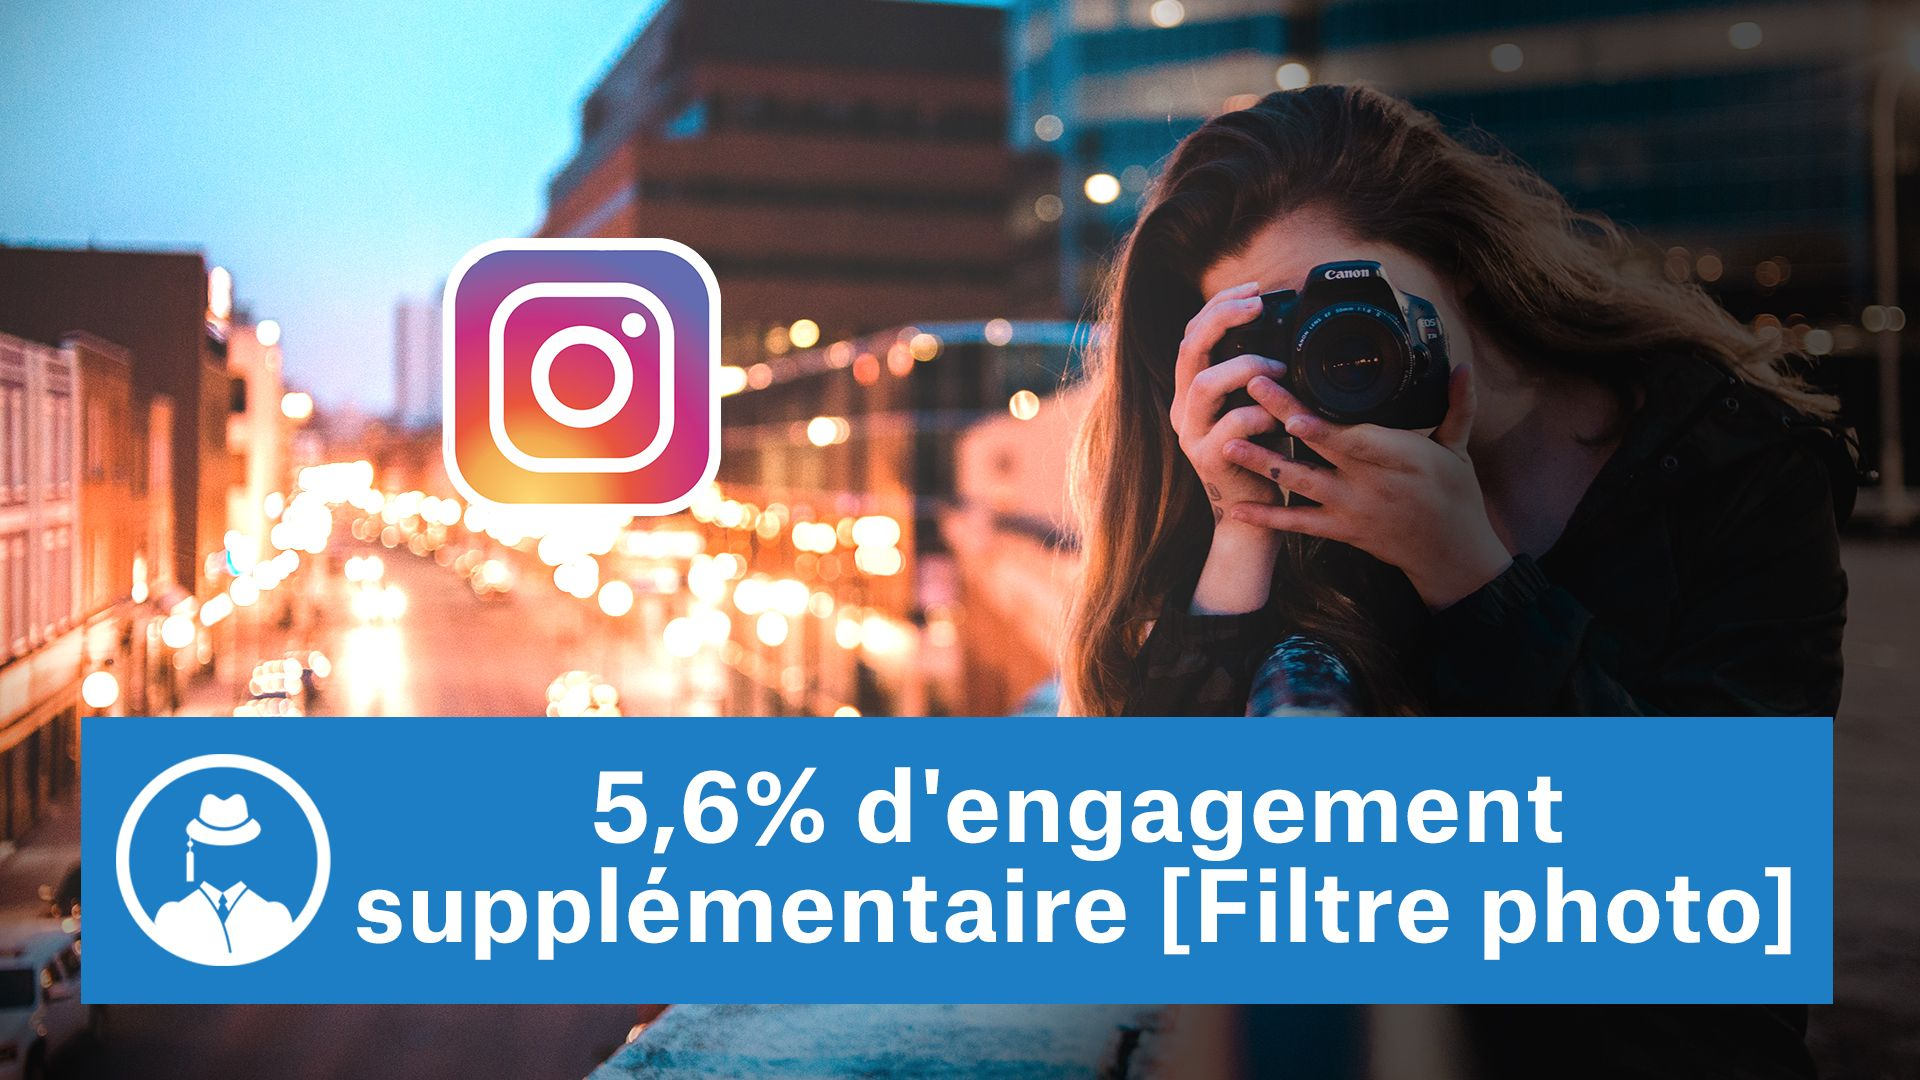 5,6% d'engagement supplémentaire [Filtre photo Instagram] #GrowthHacking #WebMarketing #FormationGrowthHacking #CentreDeFormationFrance #TunnelAARRR #AARRR #SocialMedia #CommunityManagement #SEO #MarketingDigital #SiteWeb